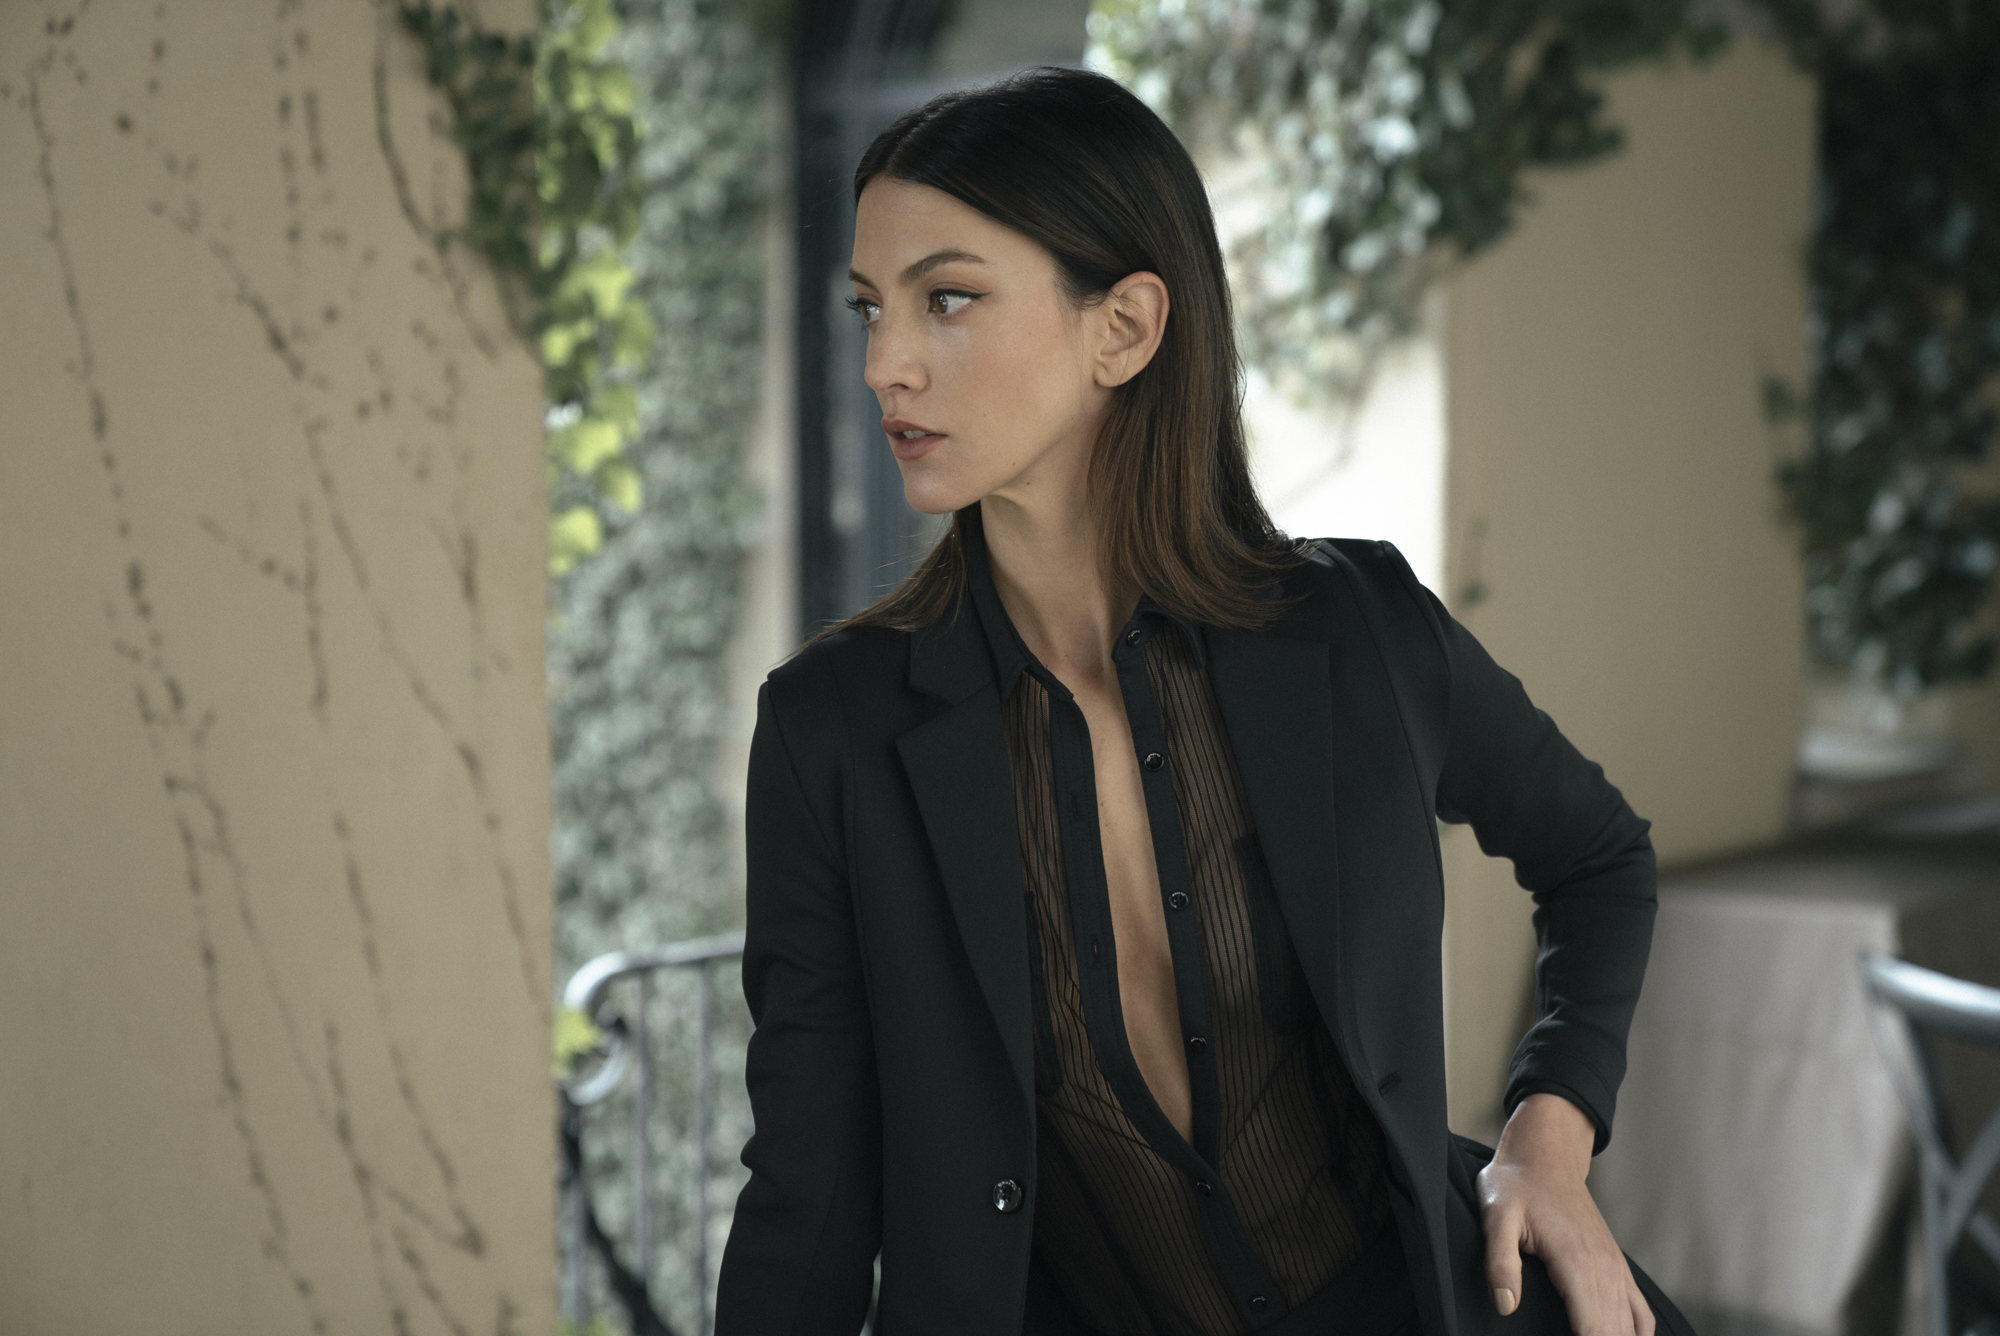 Photos by Andrew Chuang\ Model Alexandra Mendoza wearing the Knockout Suit and shirt\ Stylist Sophia Peng